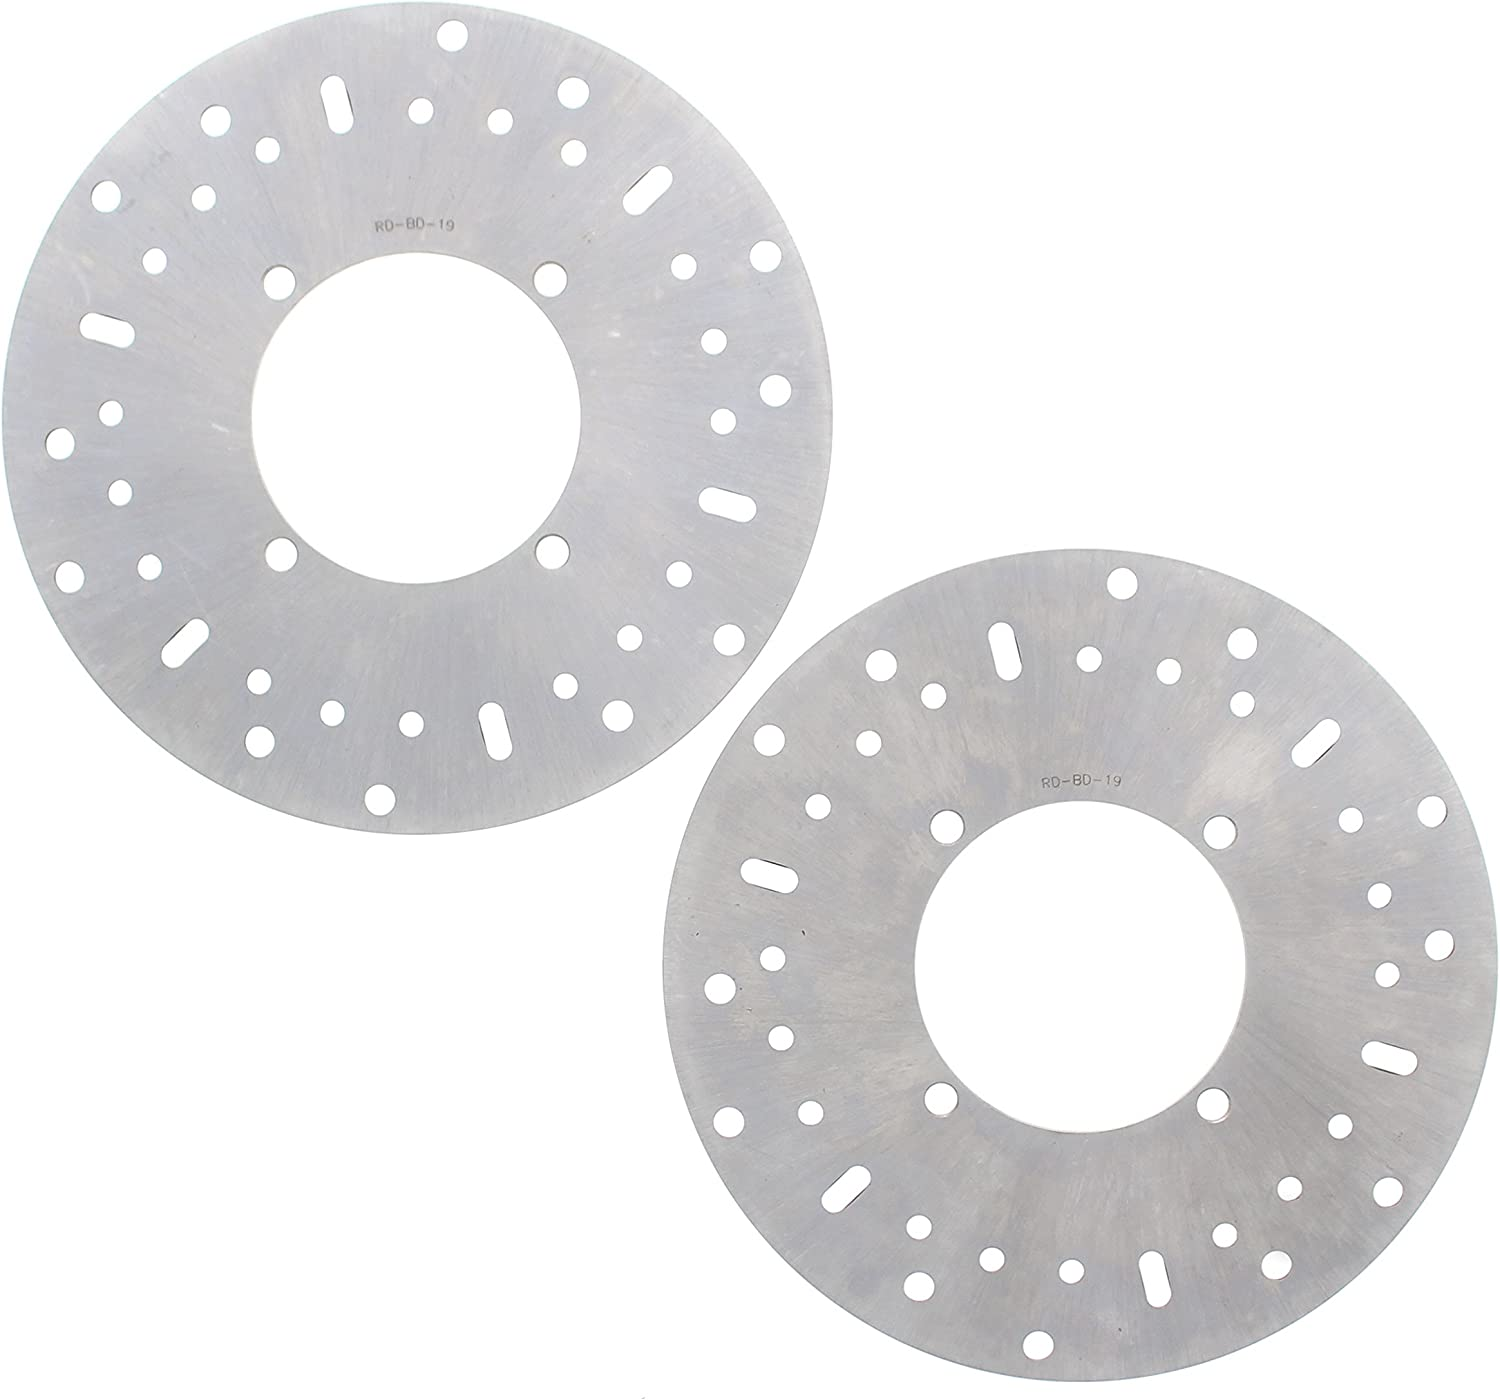 Race Driven Polaris Front Brake Rotors Brake Discs Both Sides for ATV UTV